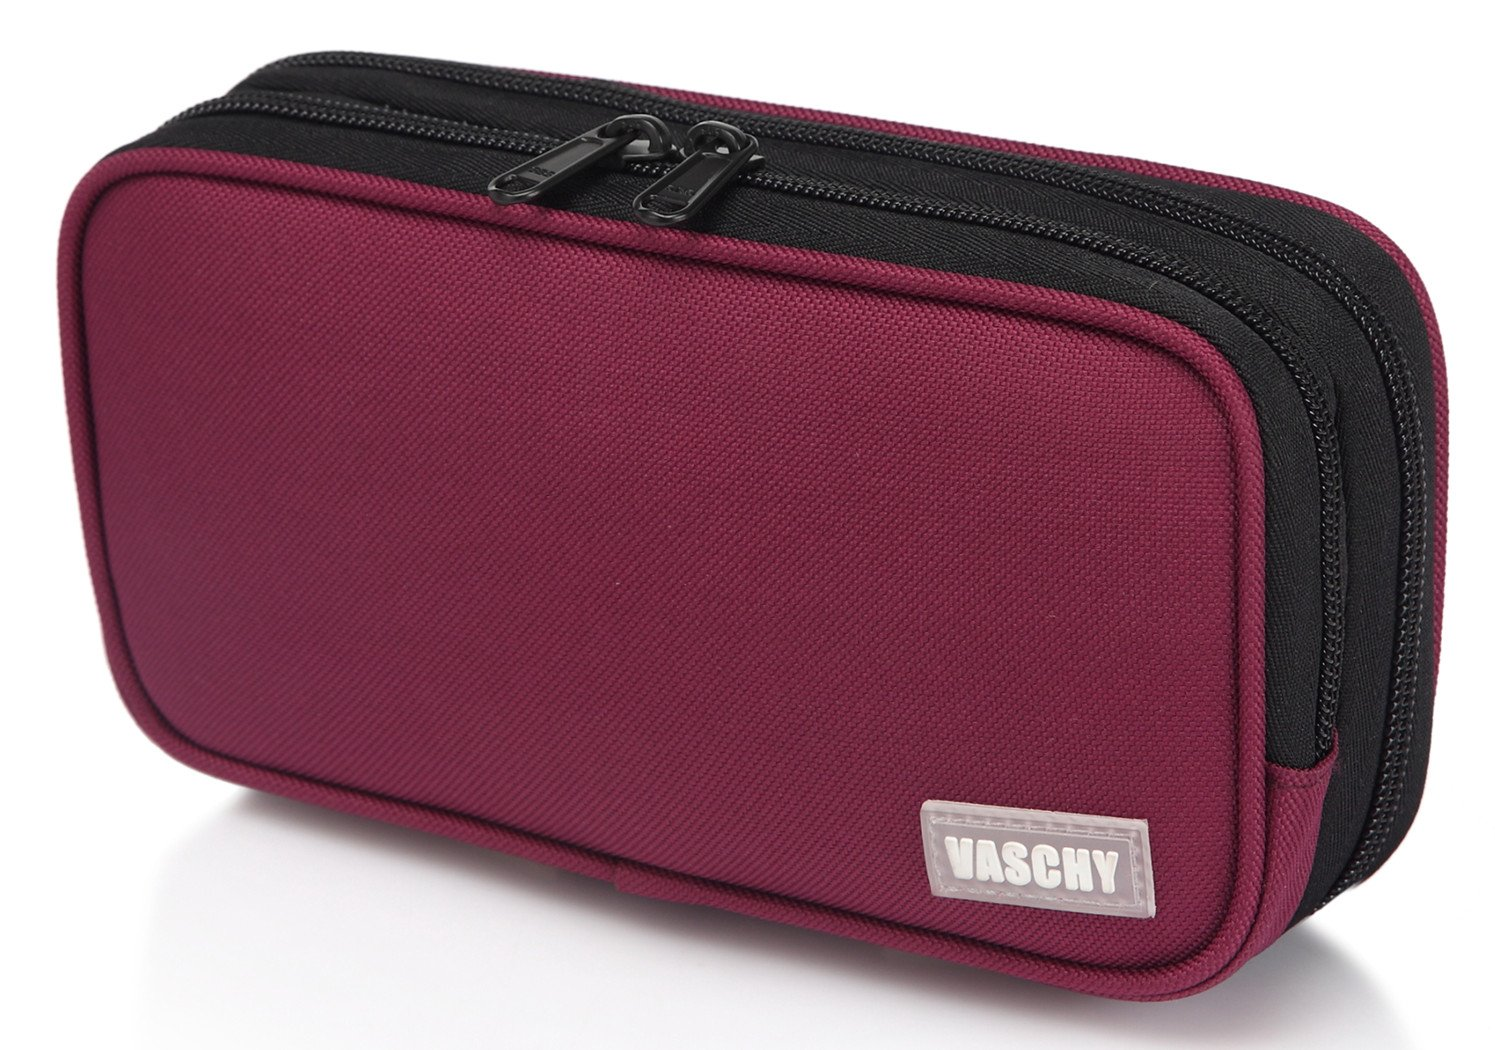 Pen Case,Vaschy Large Capacity Pen Pouch Holder with Double Zippers Multi Compartments Easy Organized Mesh Pockets Burgundy